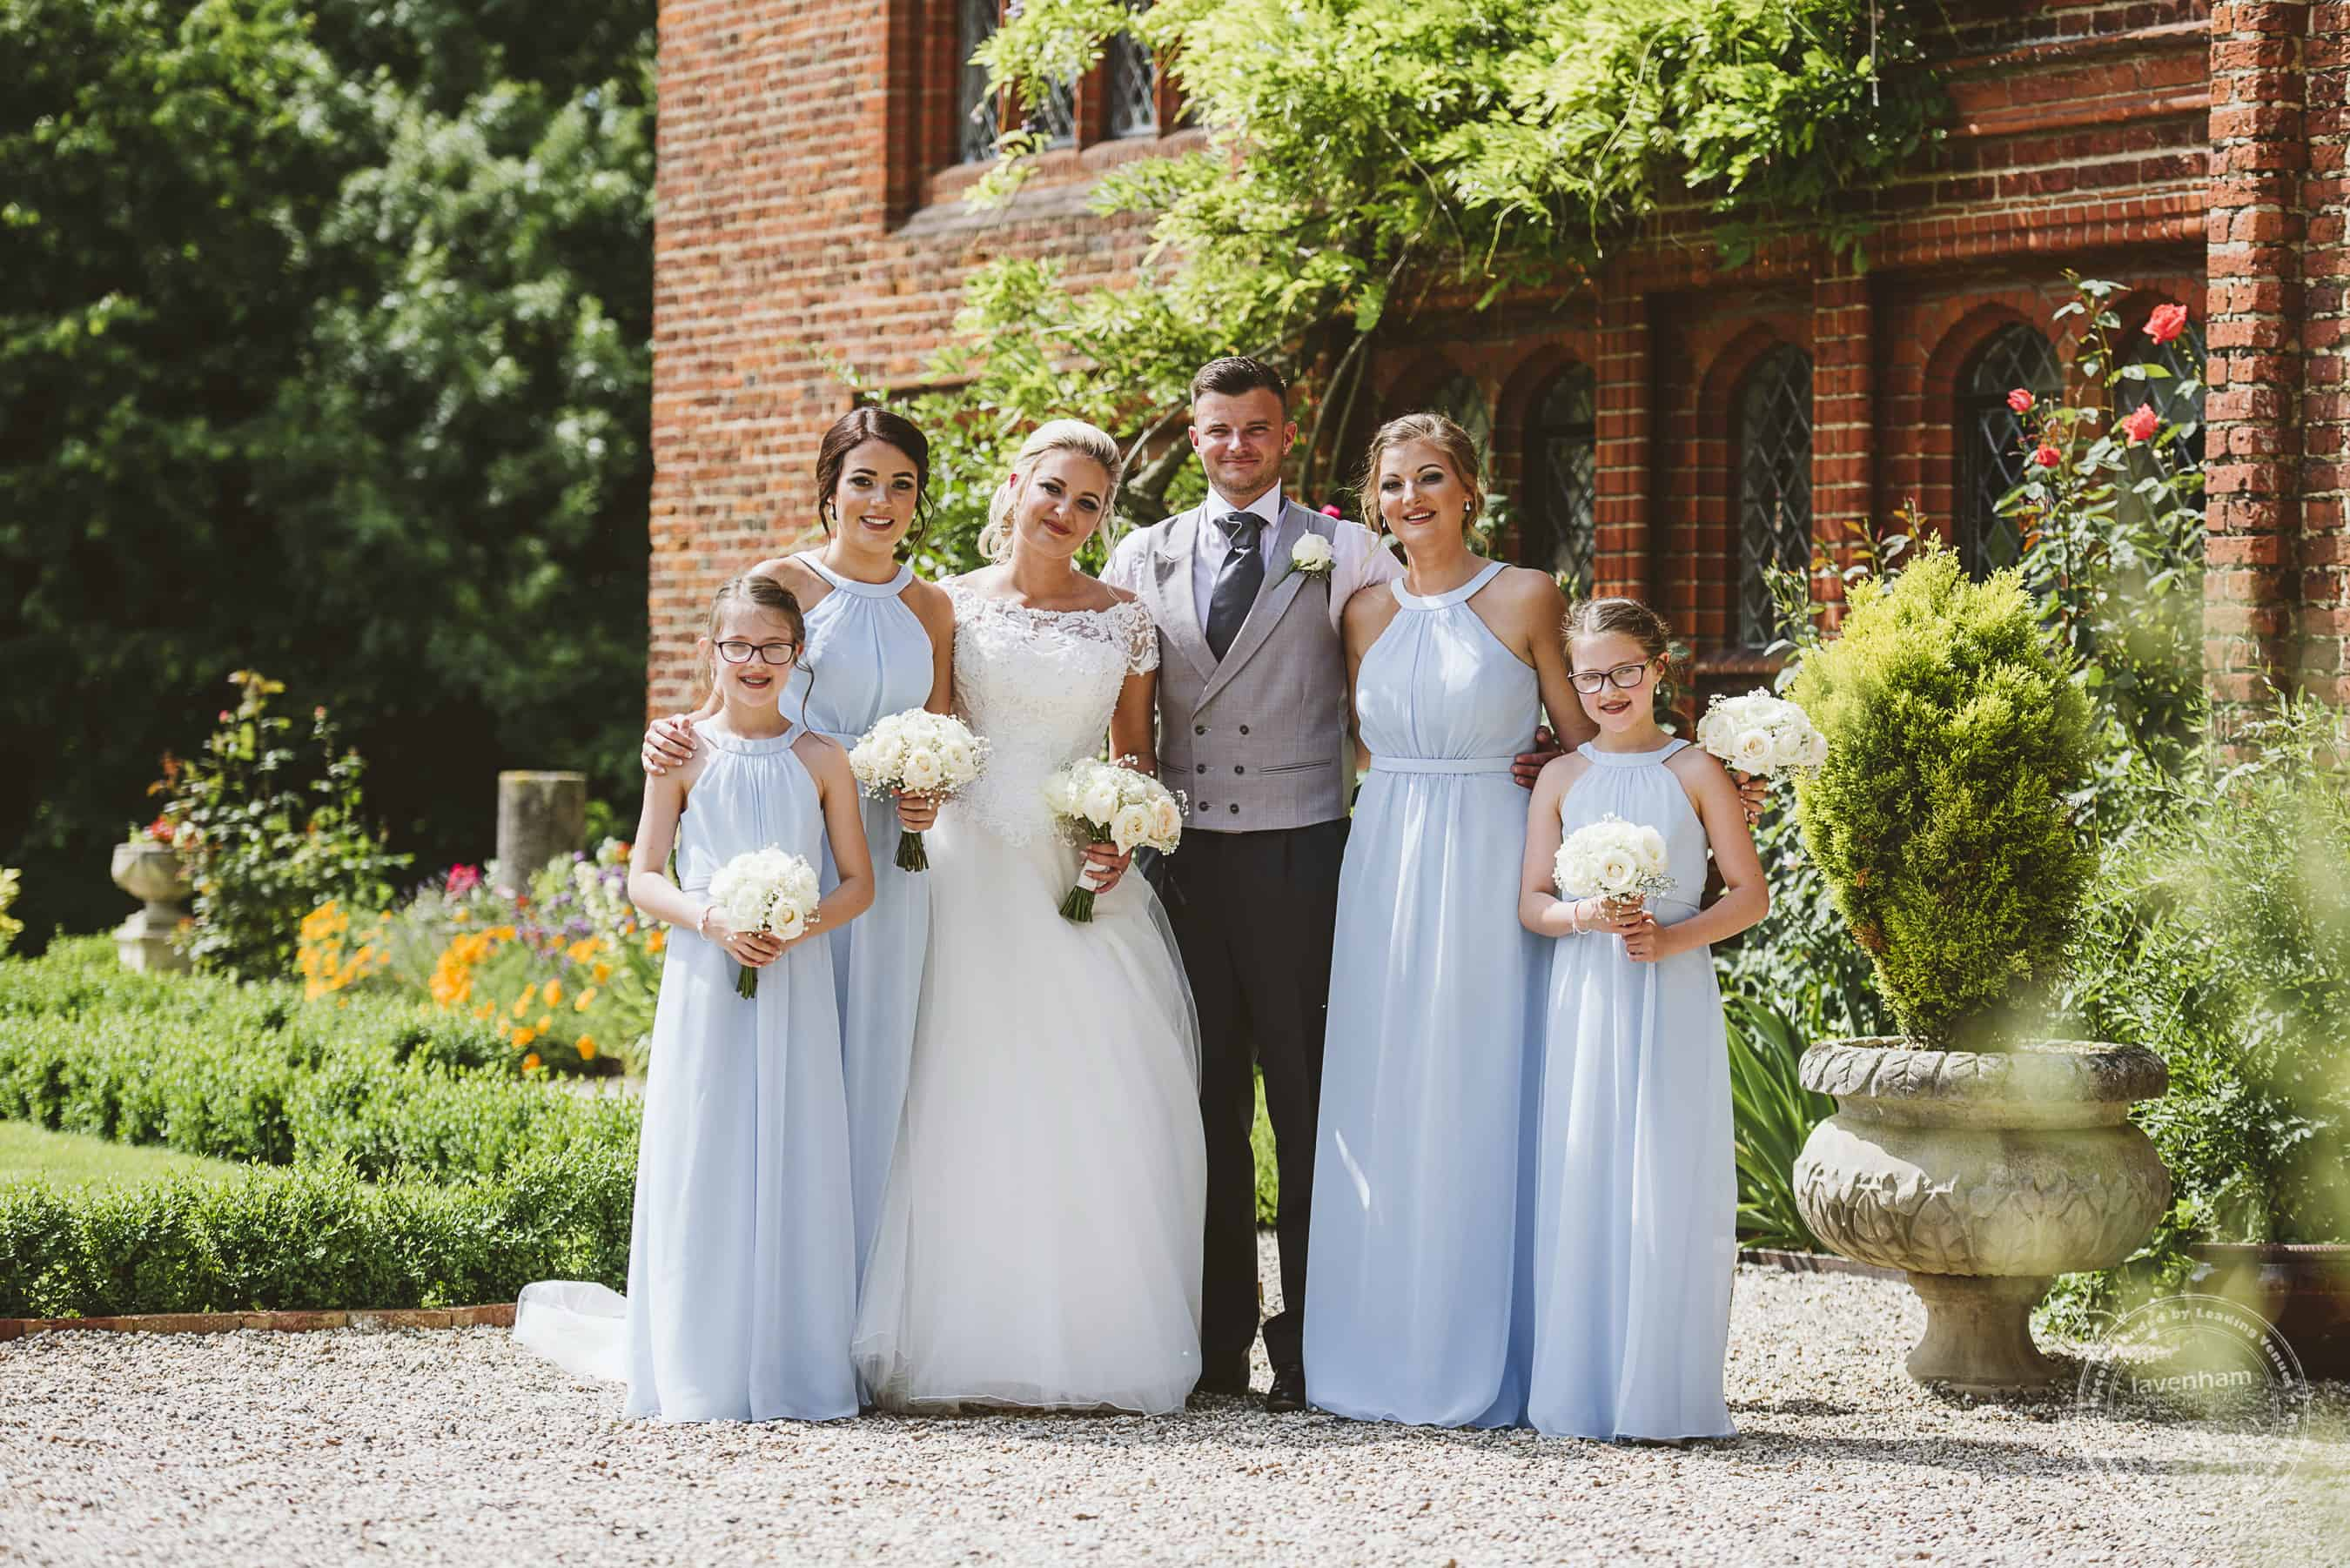 030618 Leez Priory Wedding Photography Lavenham Photographic 055